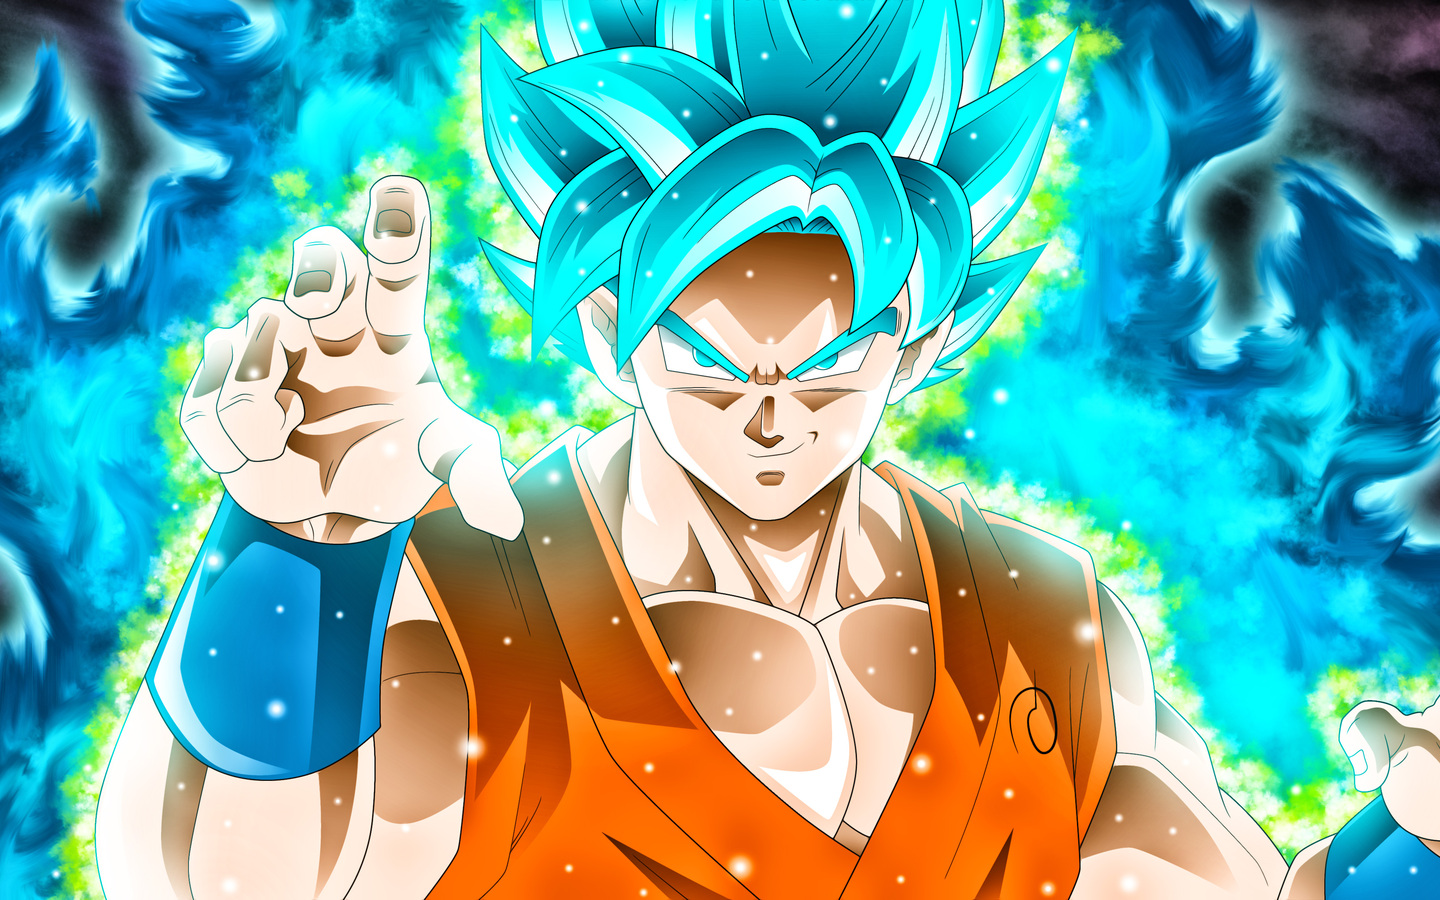 1440x900 Goku Dragon Ball Super 1440x900 Resolution Hd 4k Wallpapers Images Backgrounds Photos And Pictures